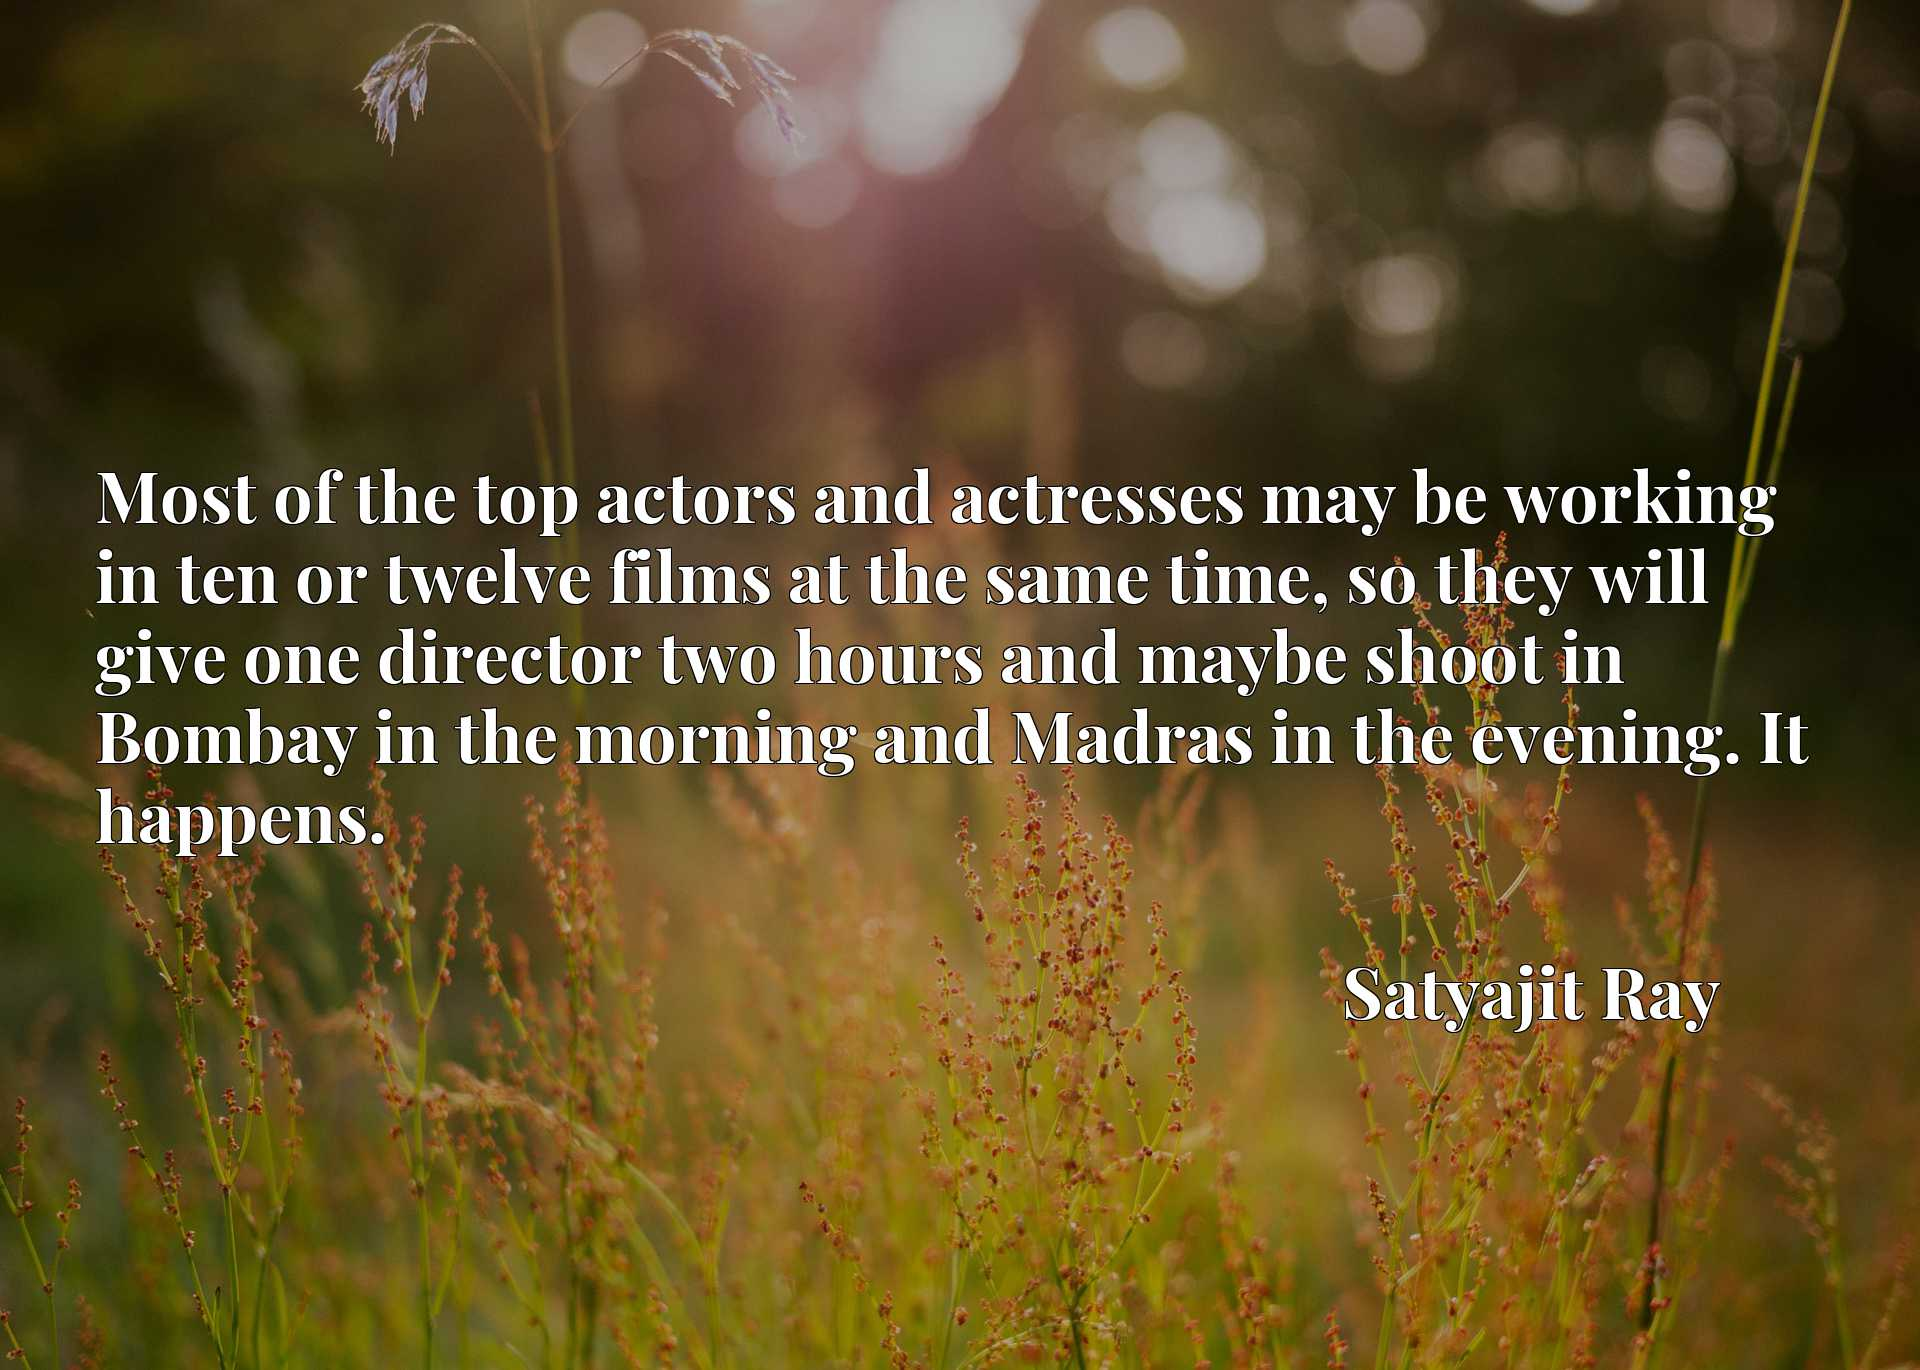 Most of the top actors and actresses may be working in ten or twelve films at the same time, so they will give one director two hours and maybe shoot in Bombay in the morning and Madras in the evening. It happens.